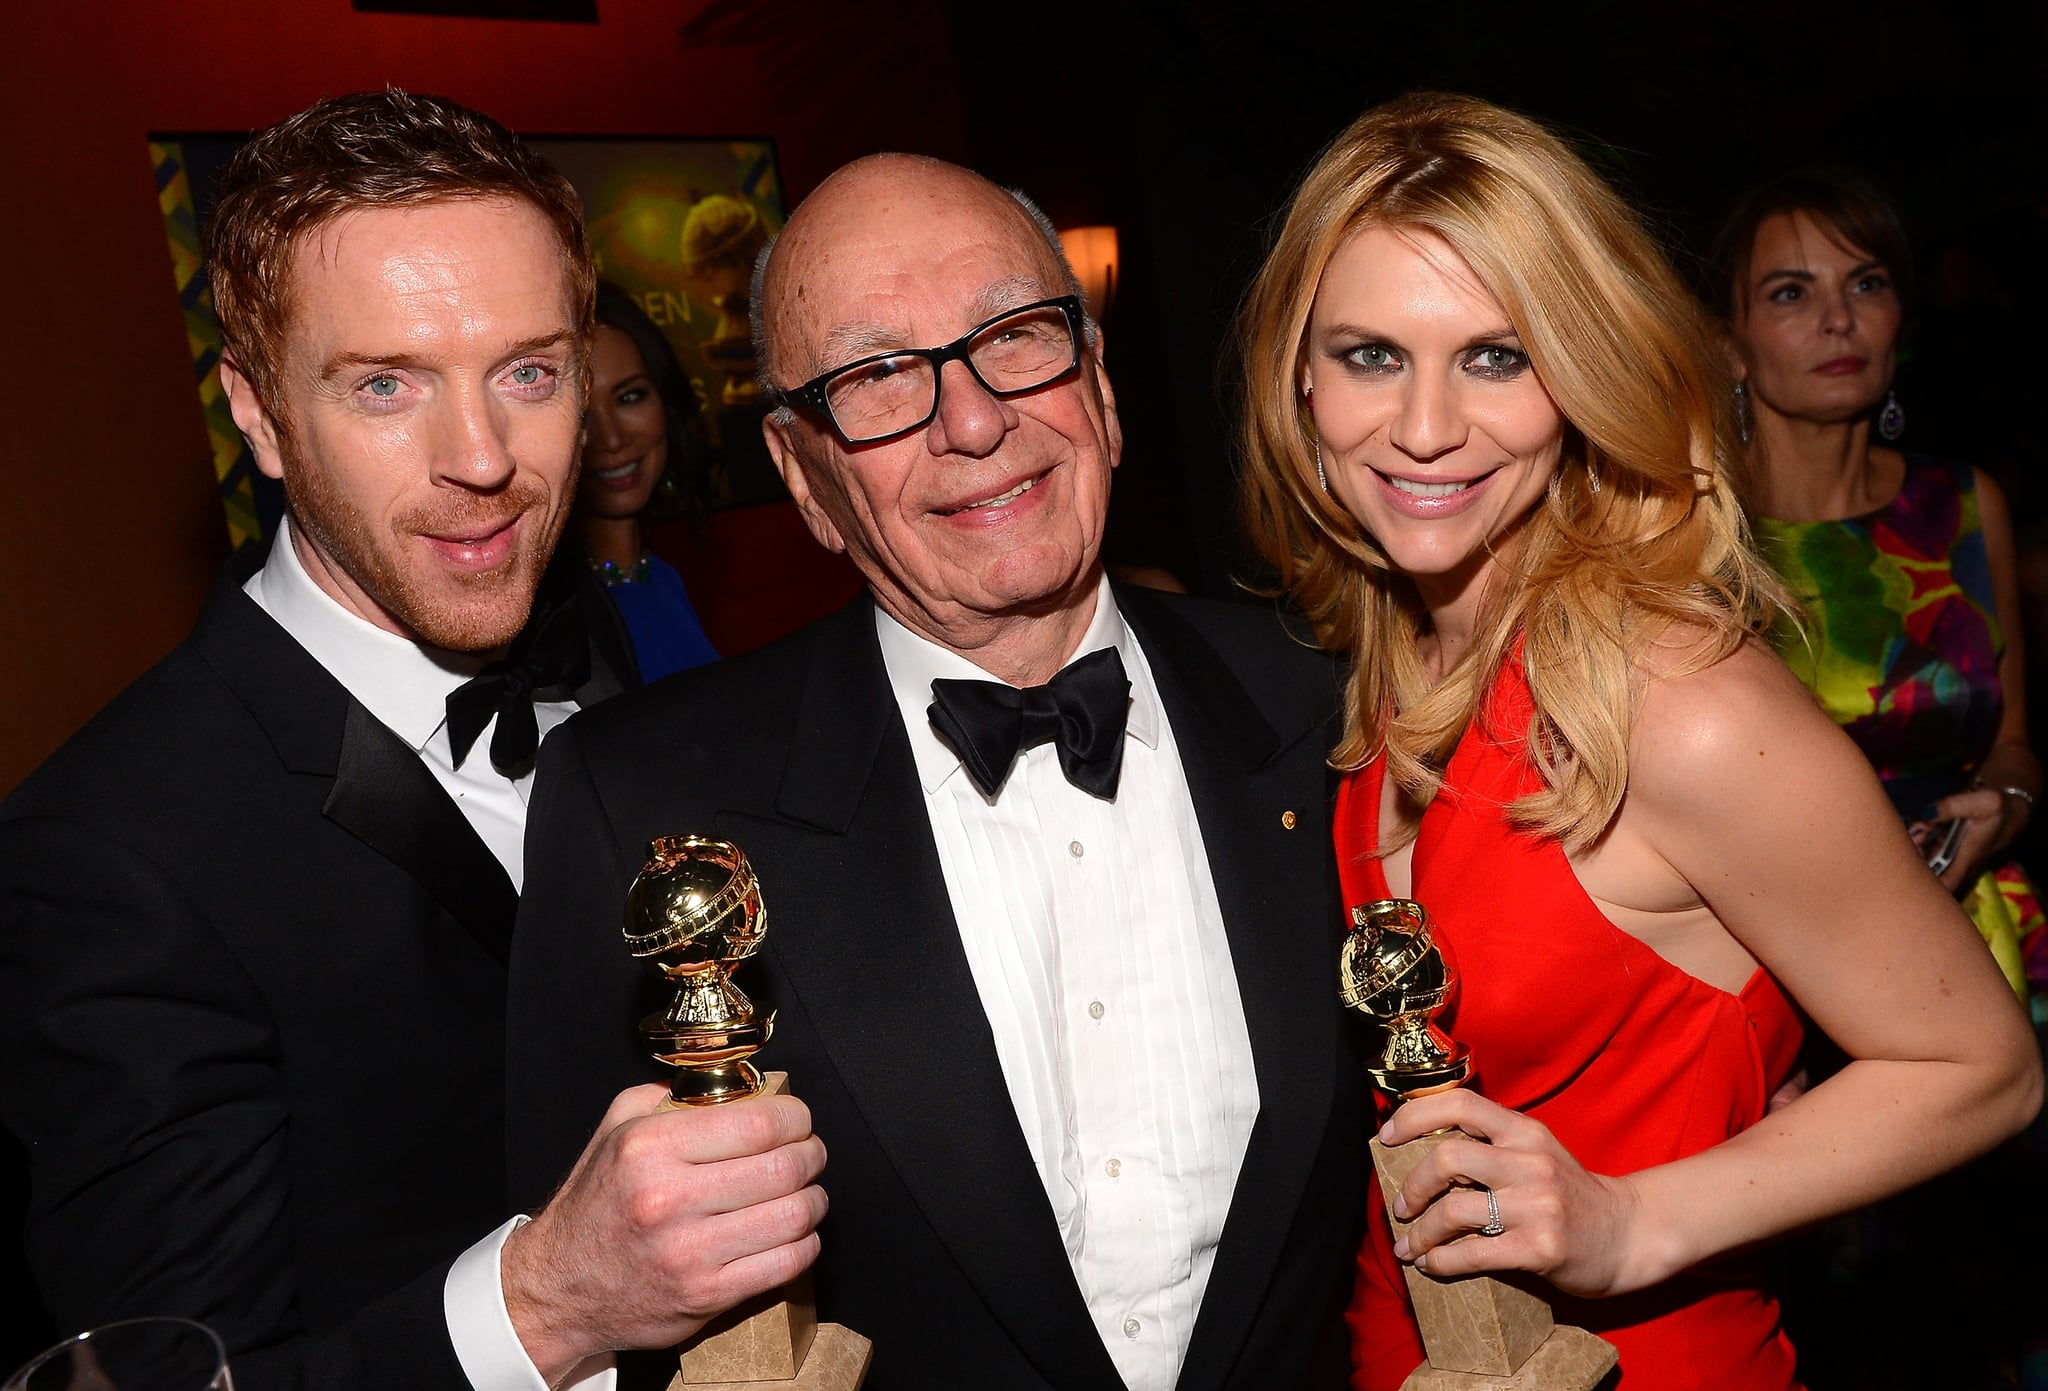 Homeland's Claire Danes and Damian Lewis said hello to Rupert Murdoch.